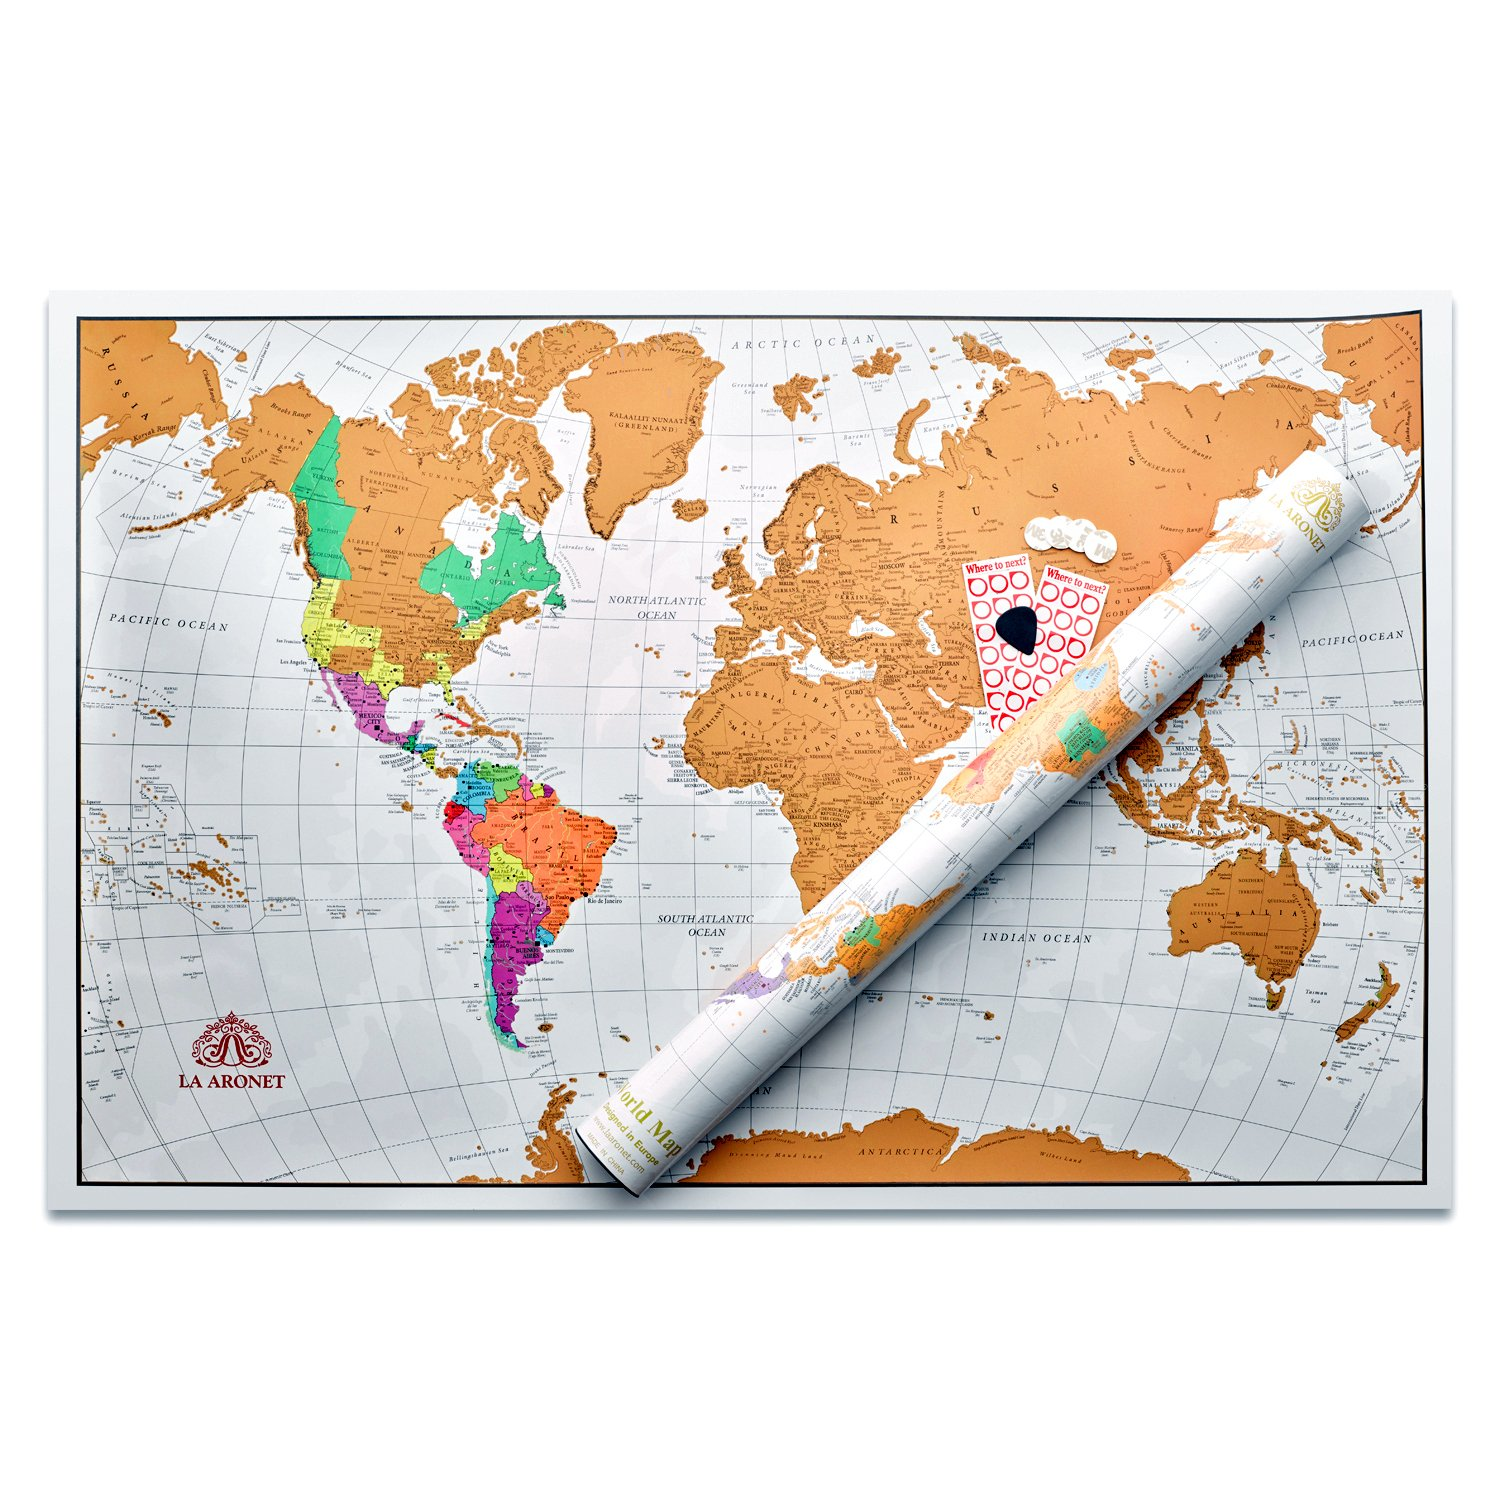 Where To Buy Large World Map.Amazon Com La Aronet Scratch Off World Map World Poster With